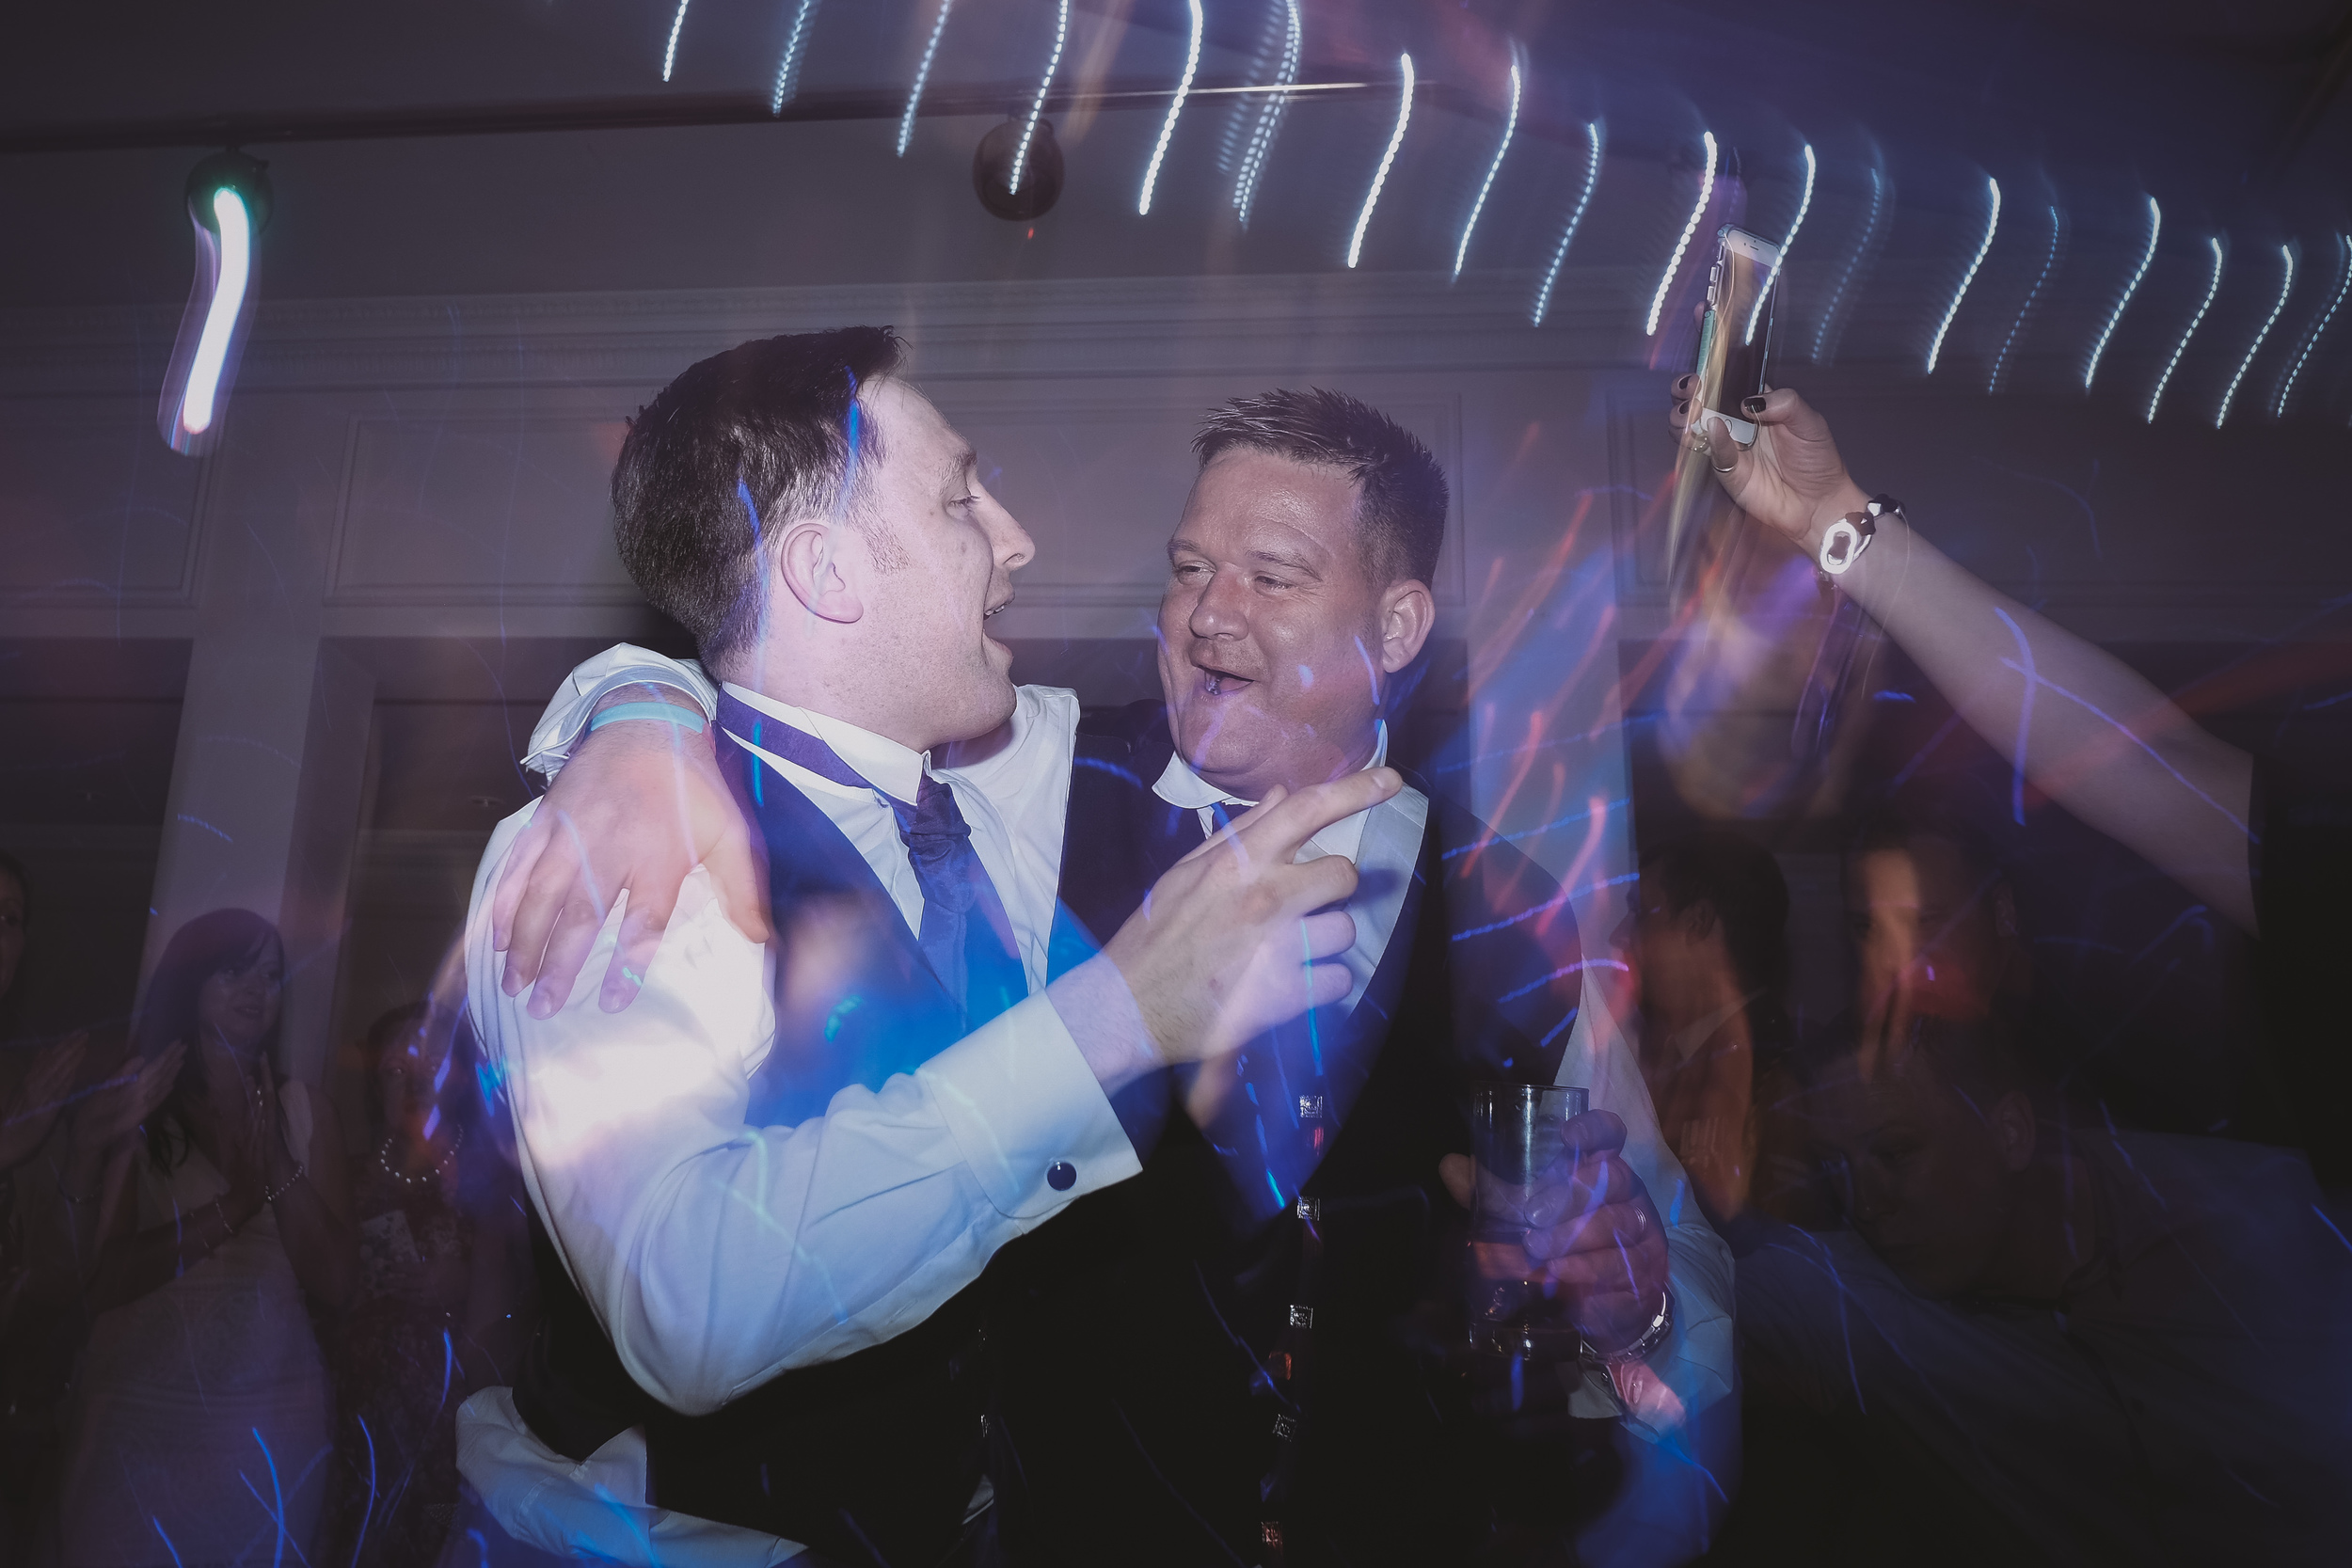 Newcastle Wedding Photographer // Groom dances with best man on dance floor